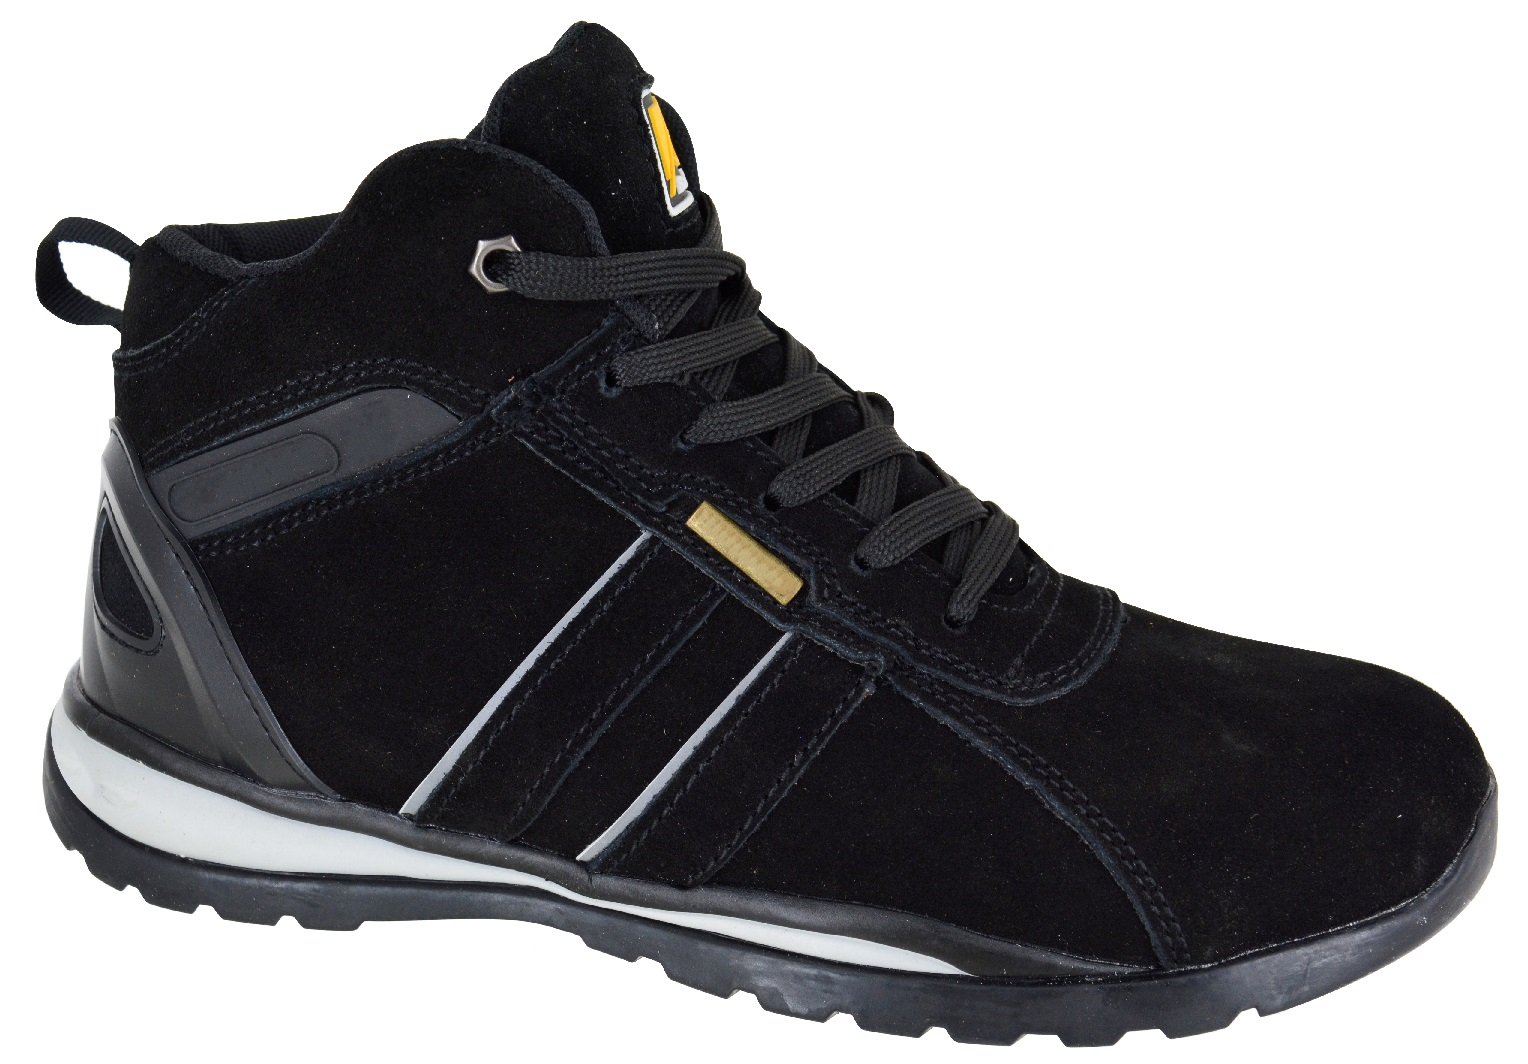 MENS-LIGHTWEIGHT-SAFETY-STEEL-TOE-CAP-WORK-TRAINER-HI-TOP-TRAINERS-SHOES-SZ-7-11 thumbnail 2